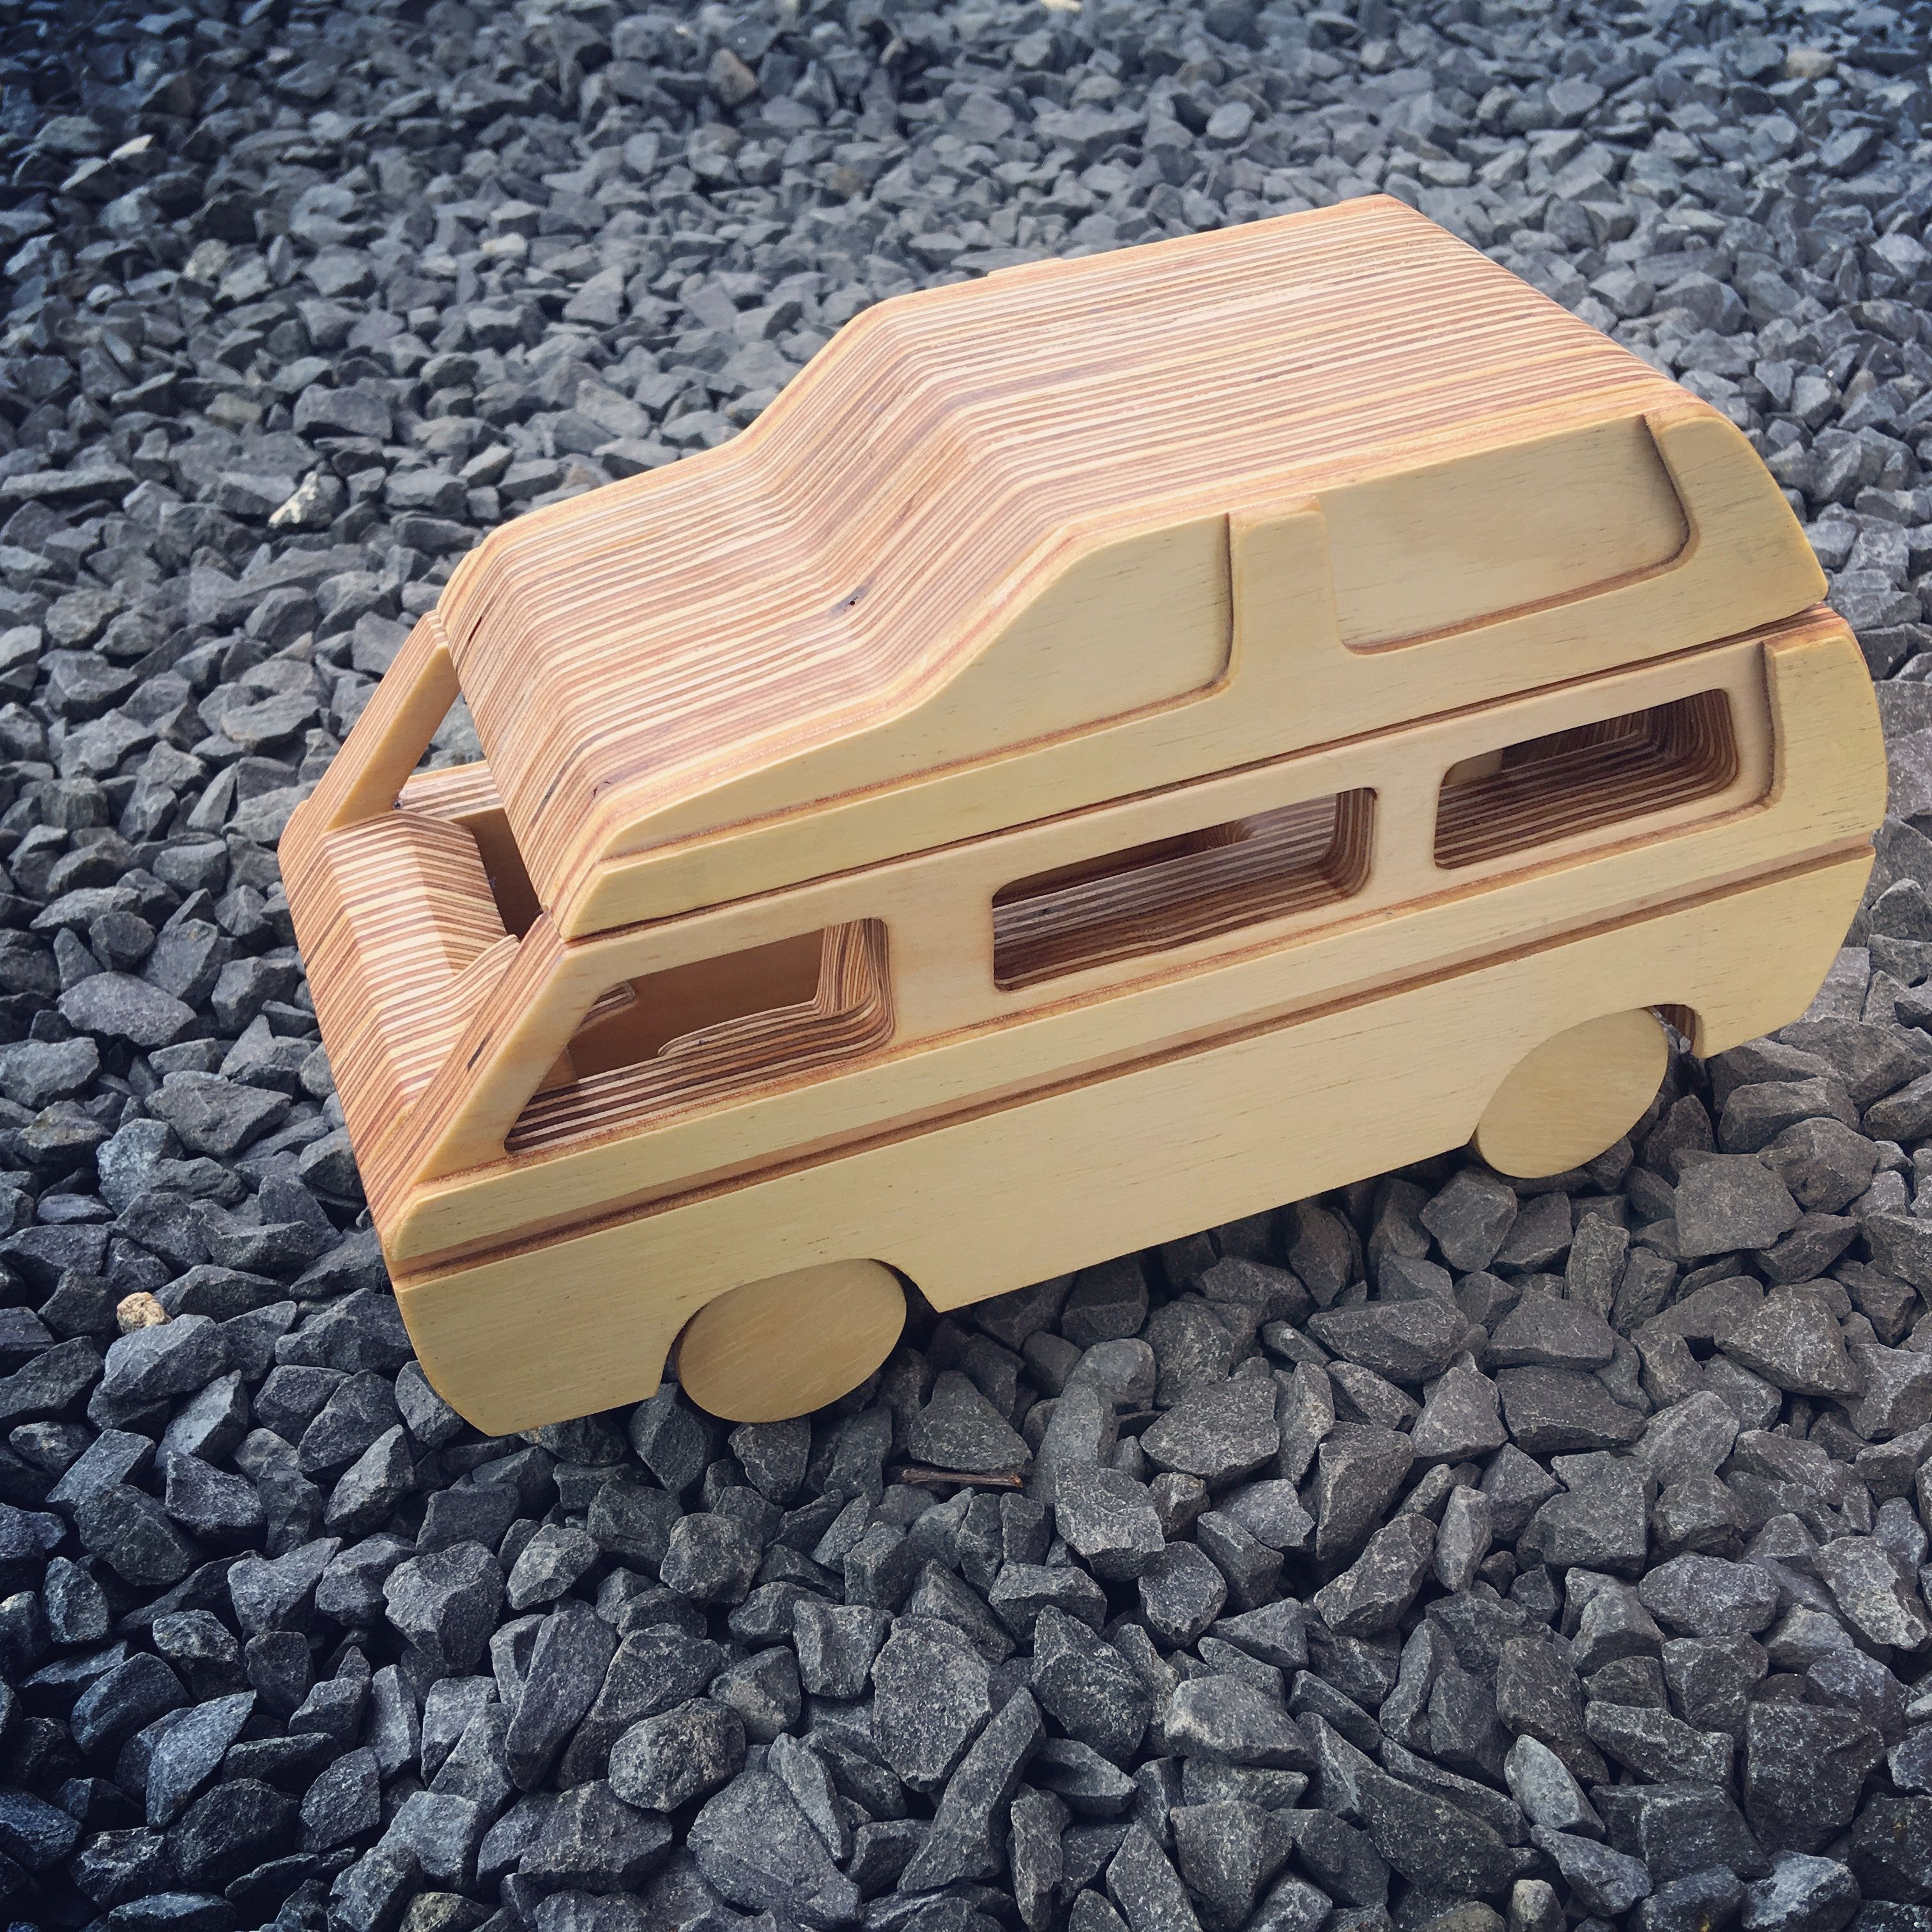 diy wooden toy car vw campervan. scroll saw plans available